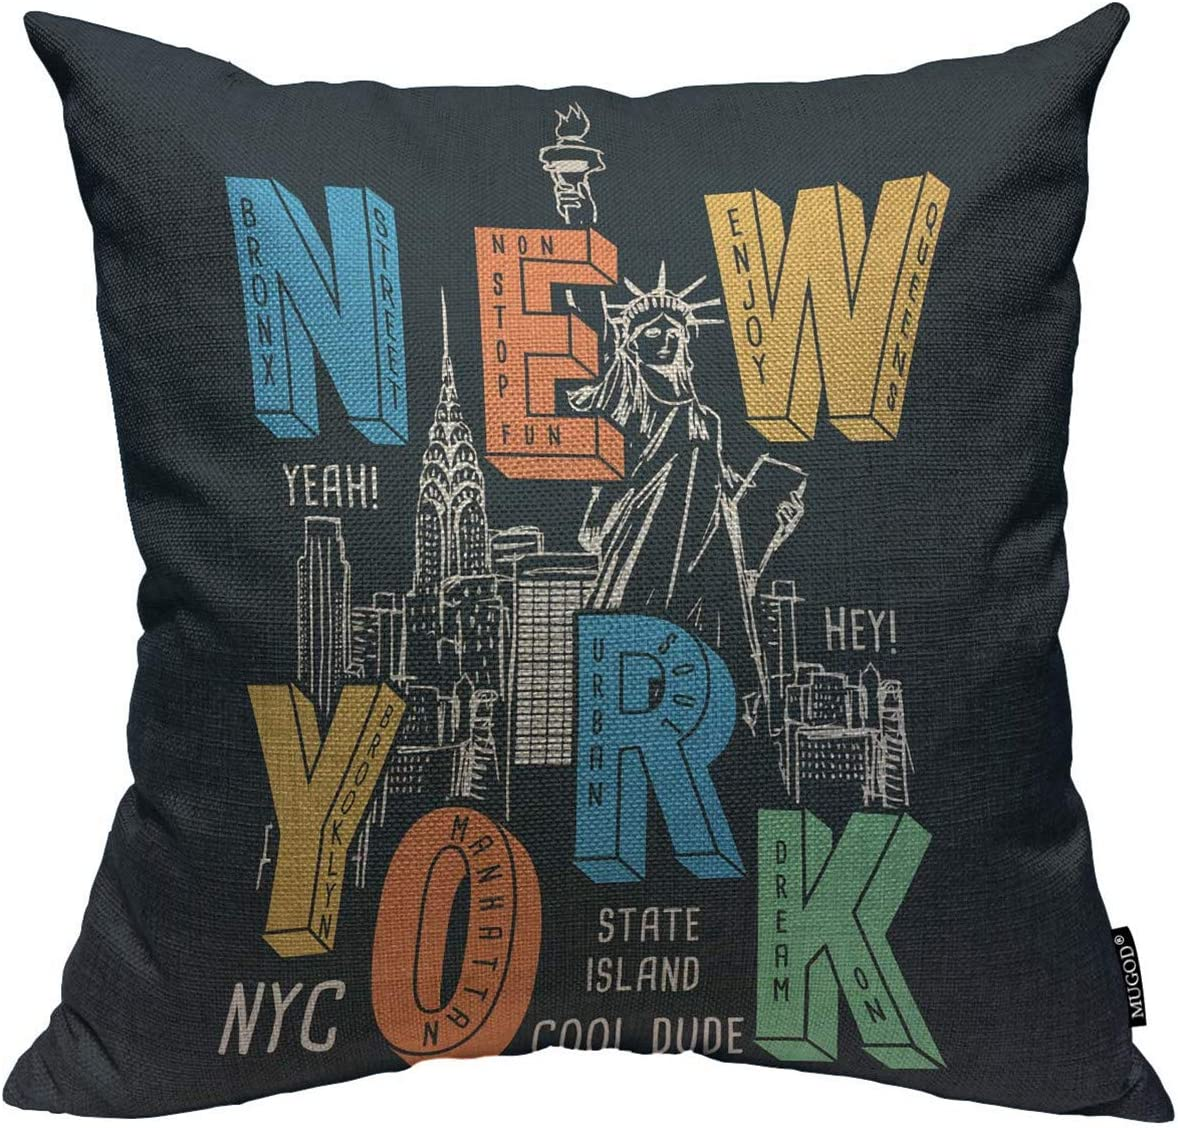 Mugod New York City Throw Pillow Cover New York Theme on Black Background Decorative Square Pillow Case for Home Bedroom Living Room Cushion Cover 18x18 Inch